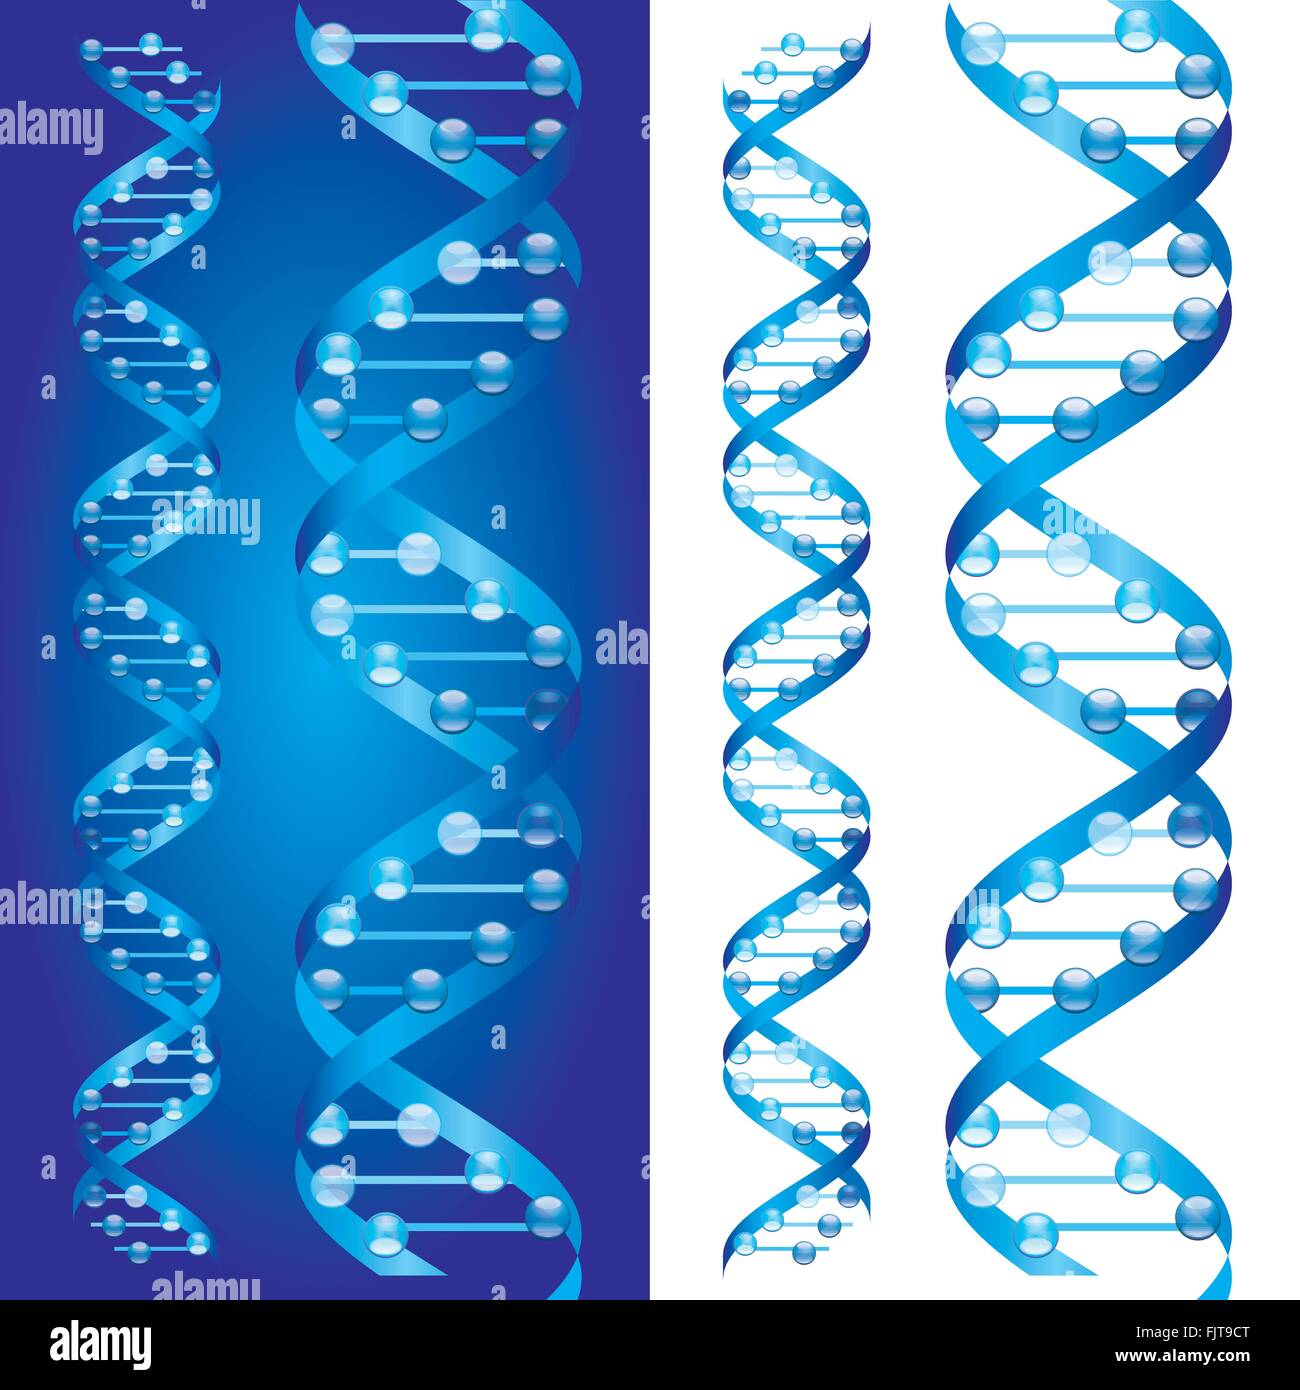 Blueprint dna chains on blue and white background stock vector blueprint dna chains on blue and white background malvernweather Choice Image